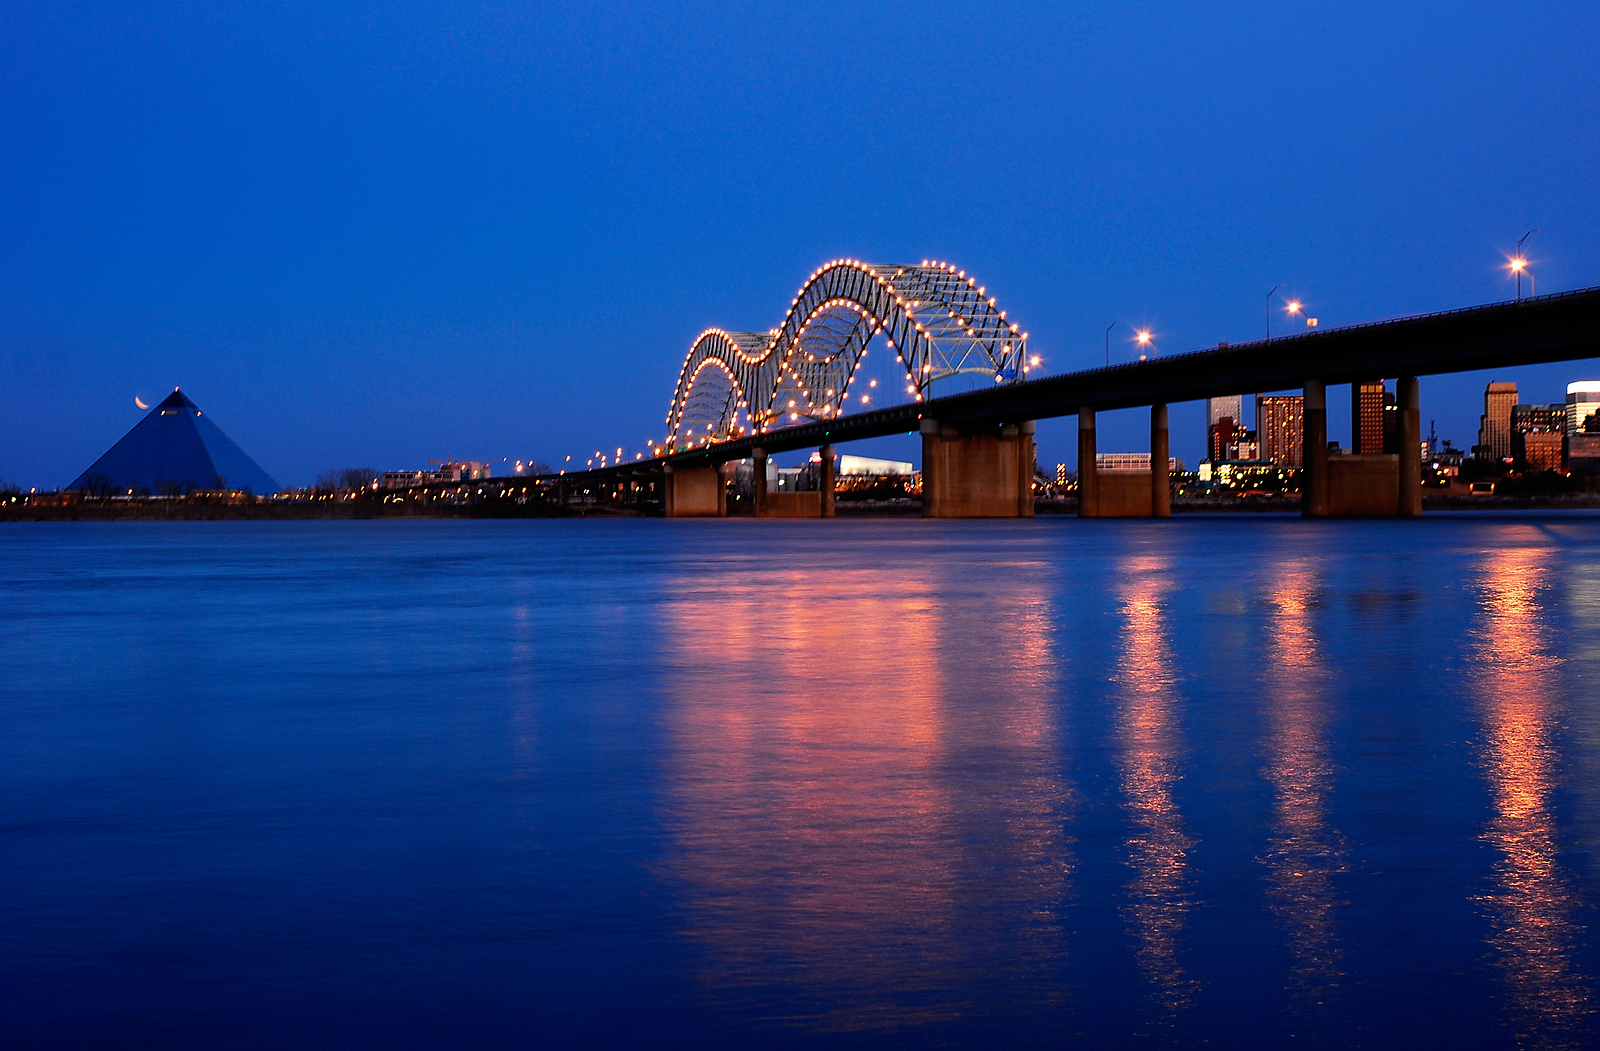 Twilight shot of the bridging leading into Memphis over the Mississippi River